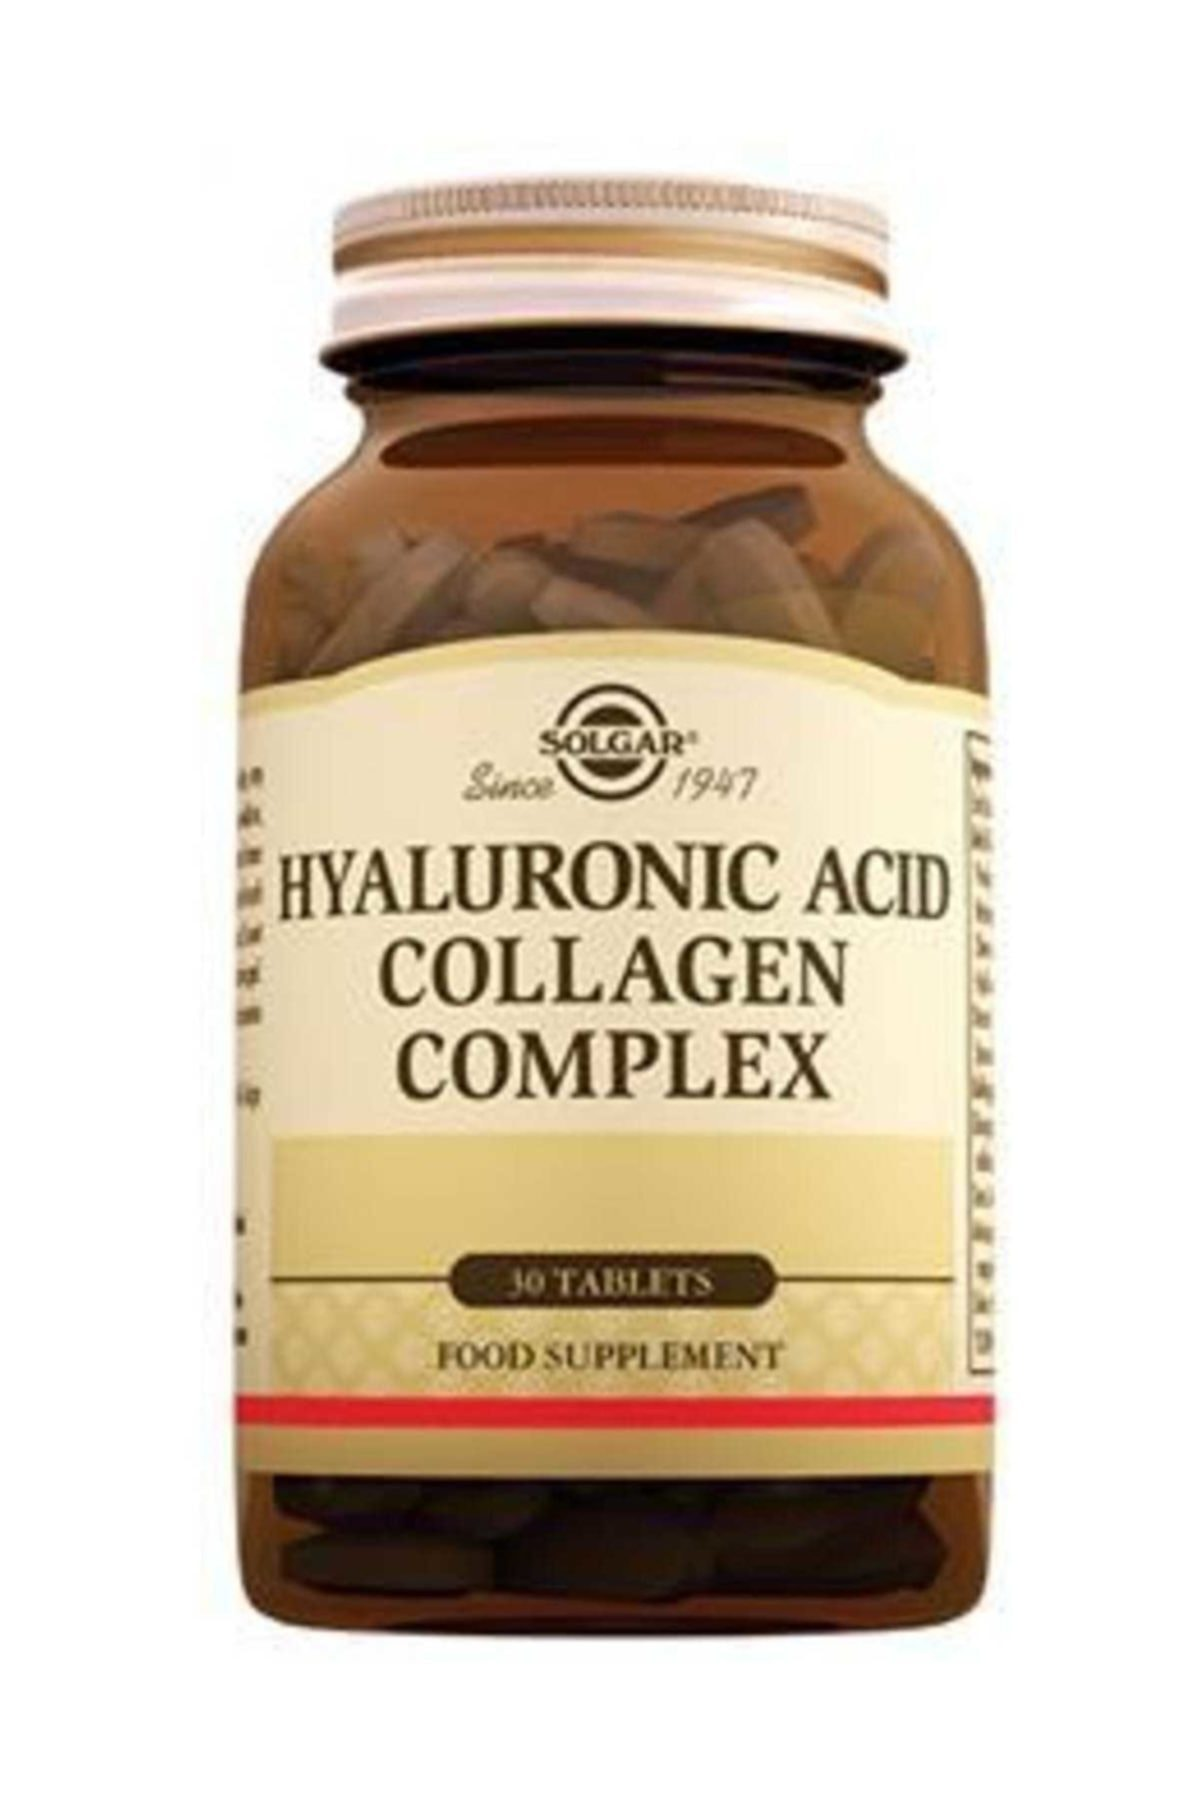 Hyaluronic Acid Collagen Complex 120 mg - 30 tablet